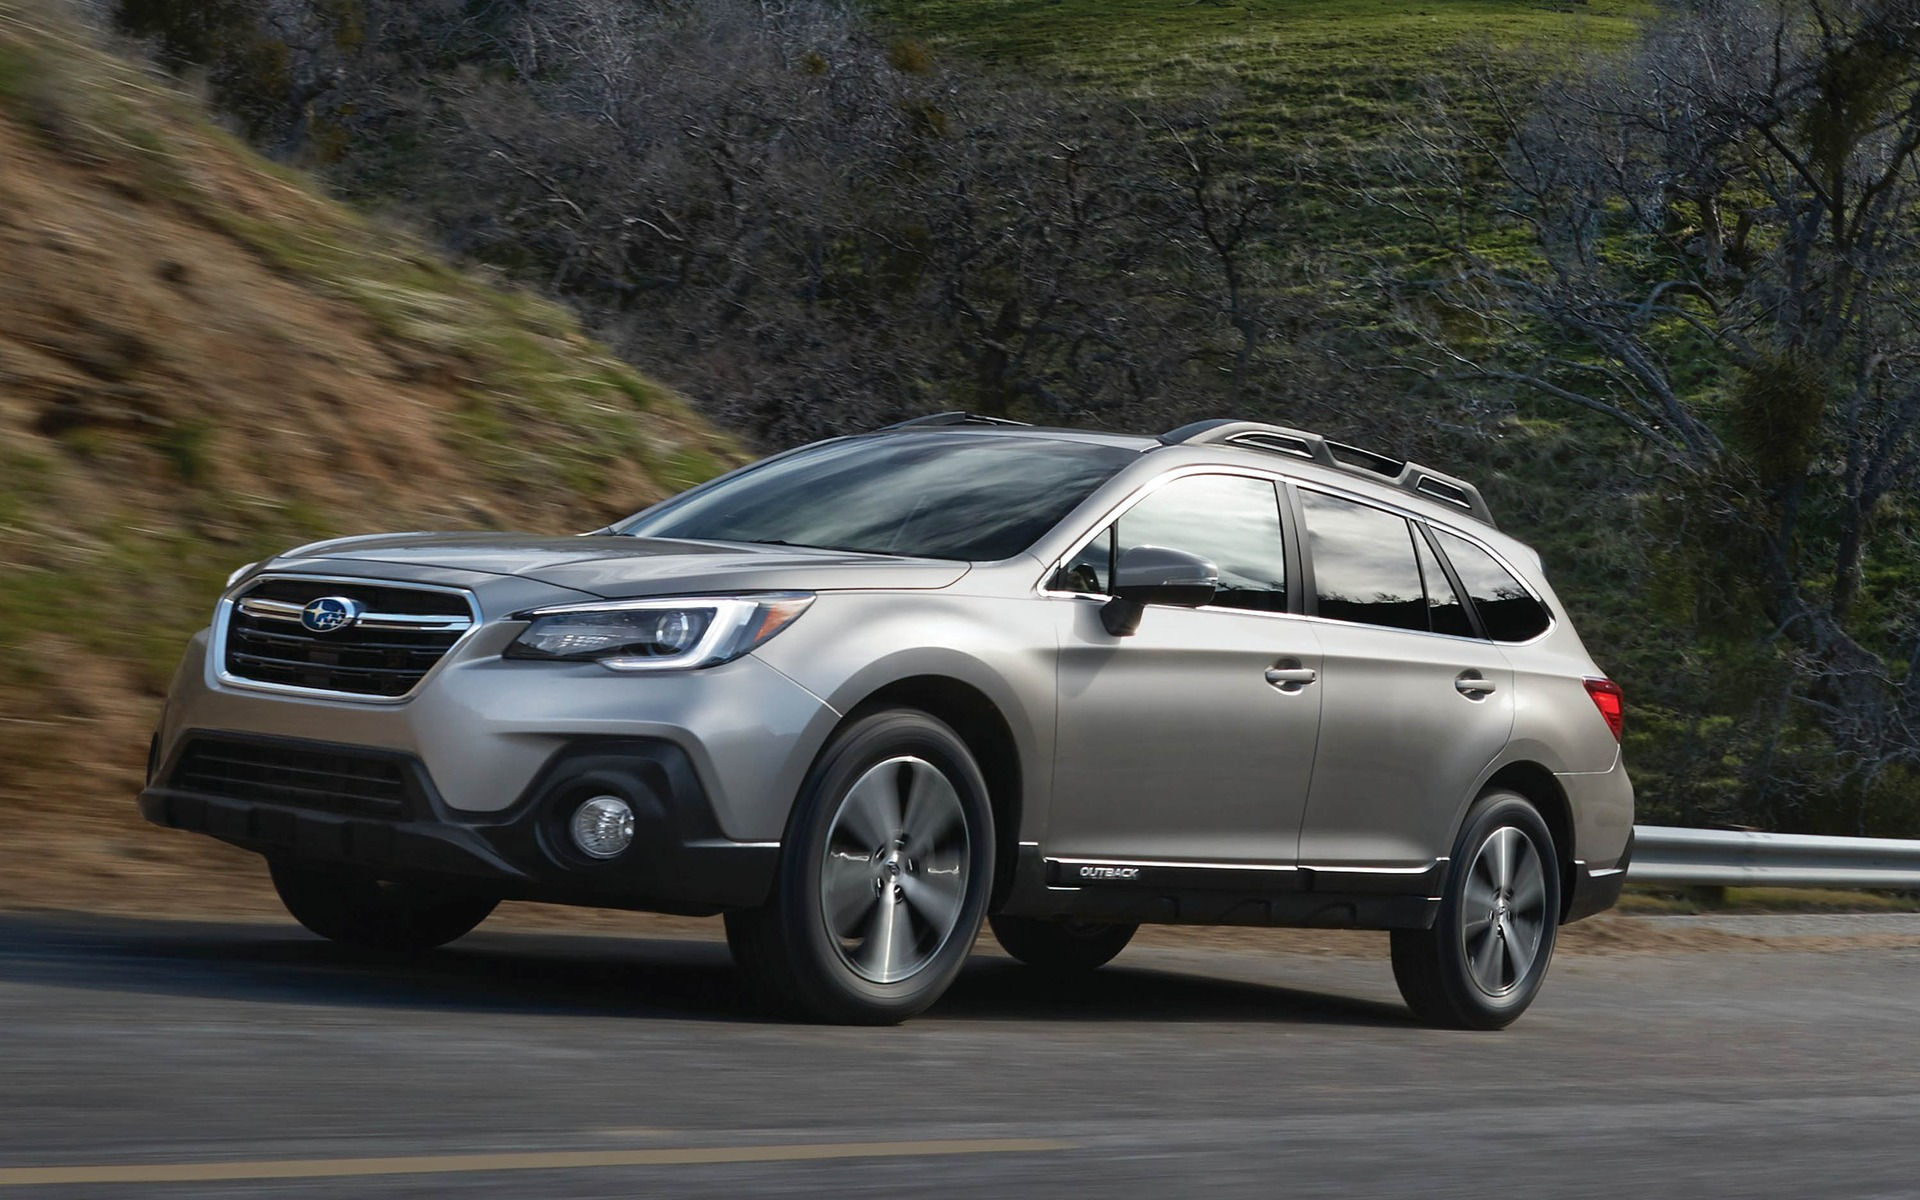 2018 Subaru Outback 25i Specifications  The Car Guide